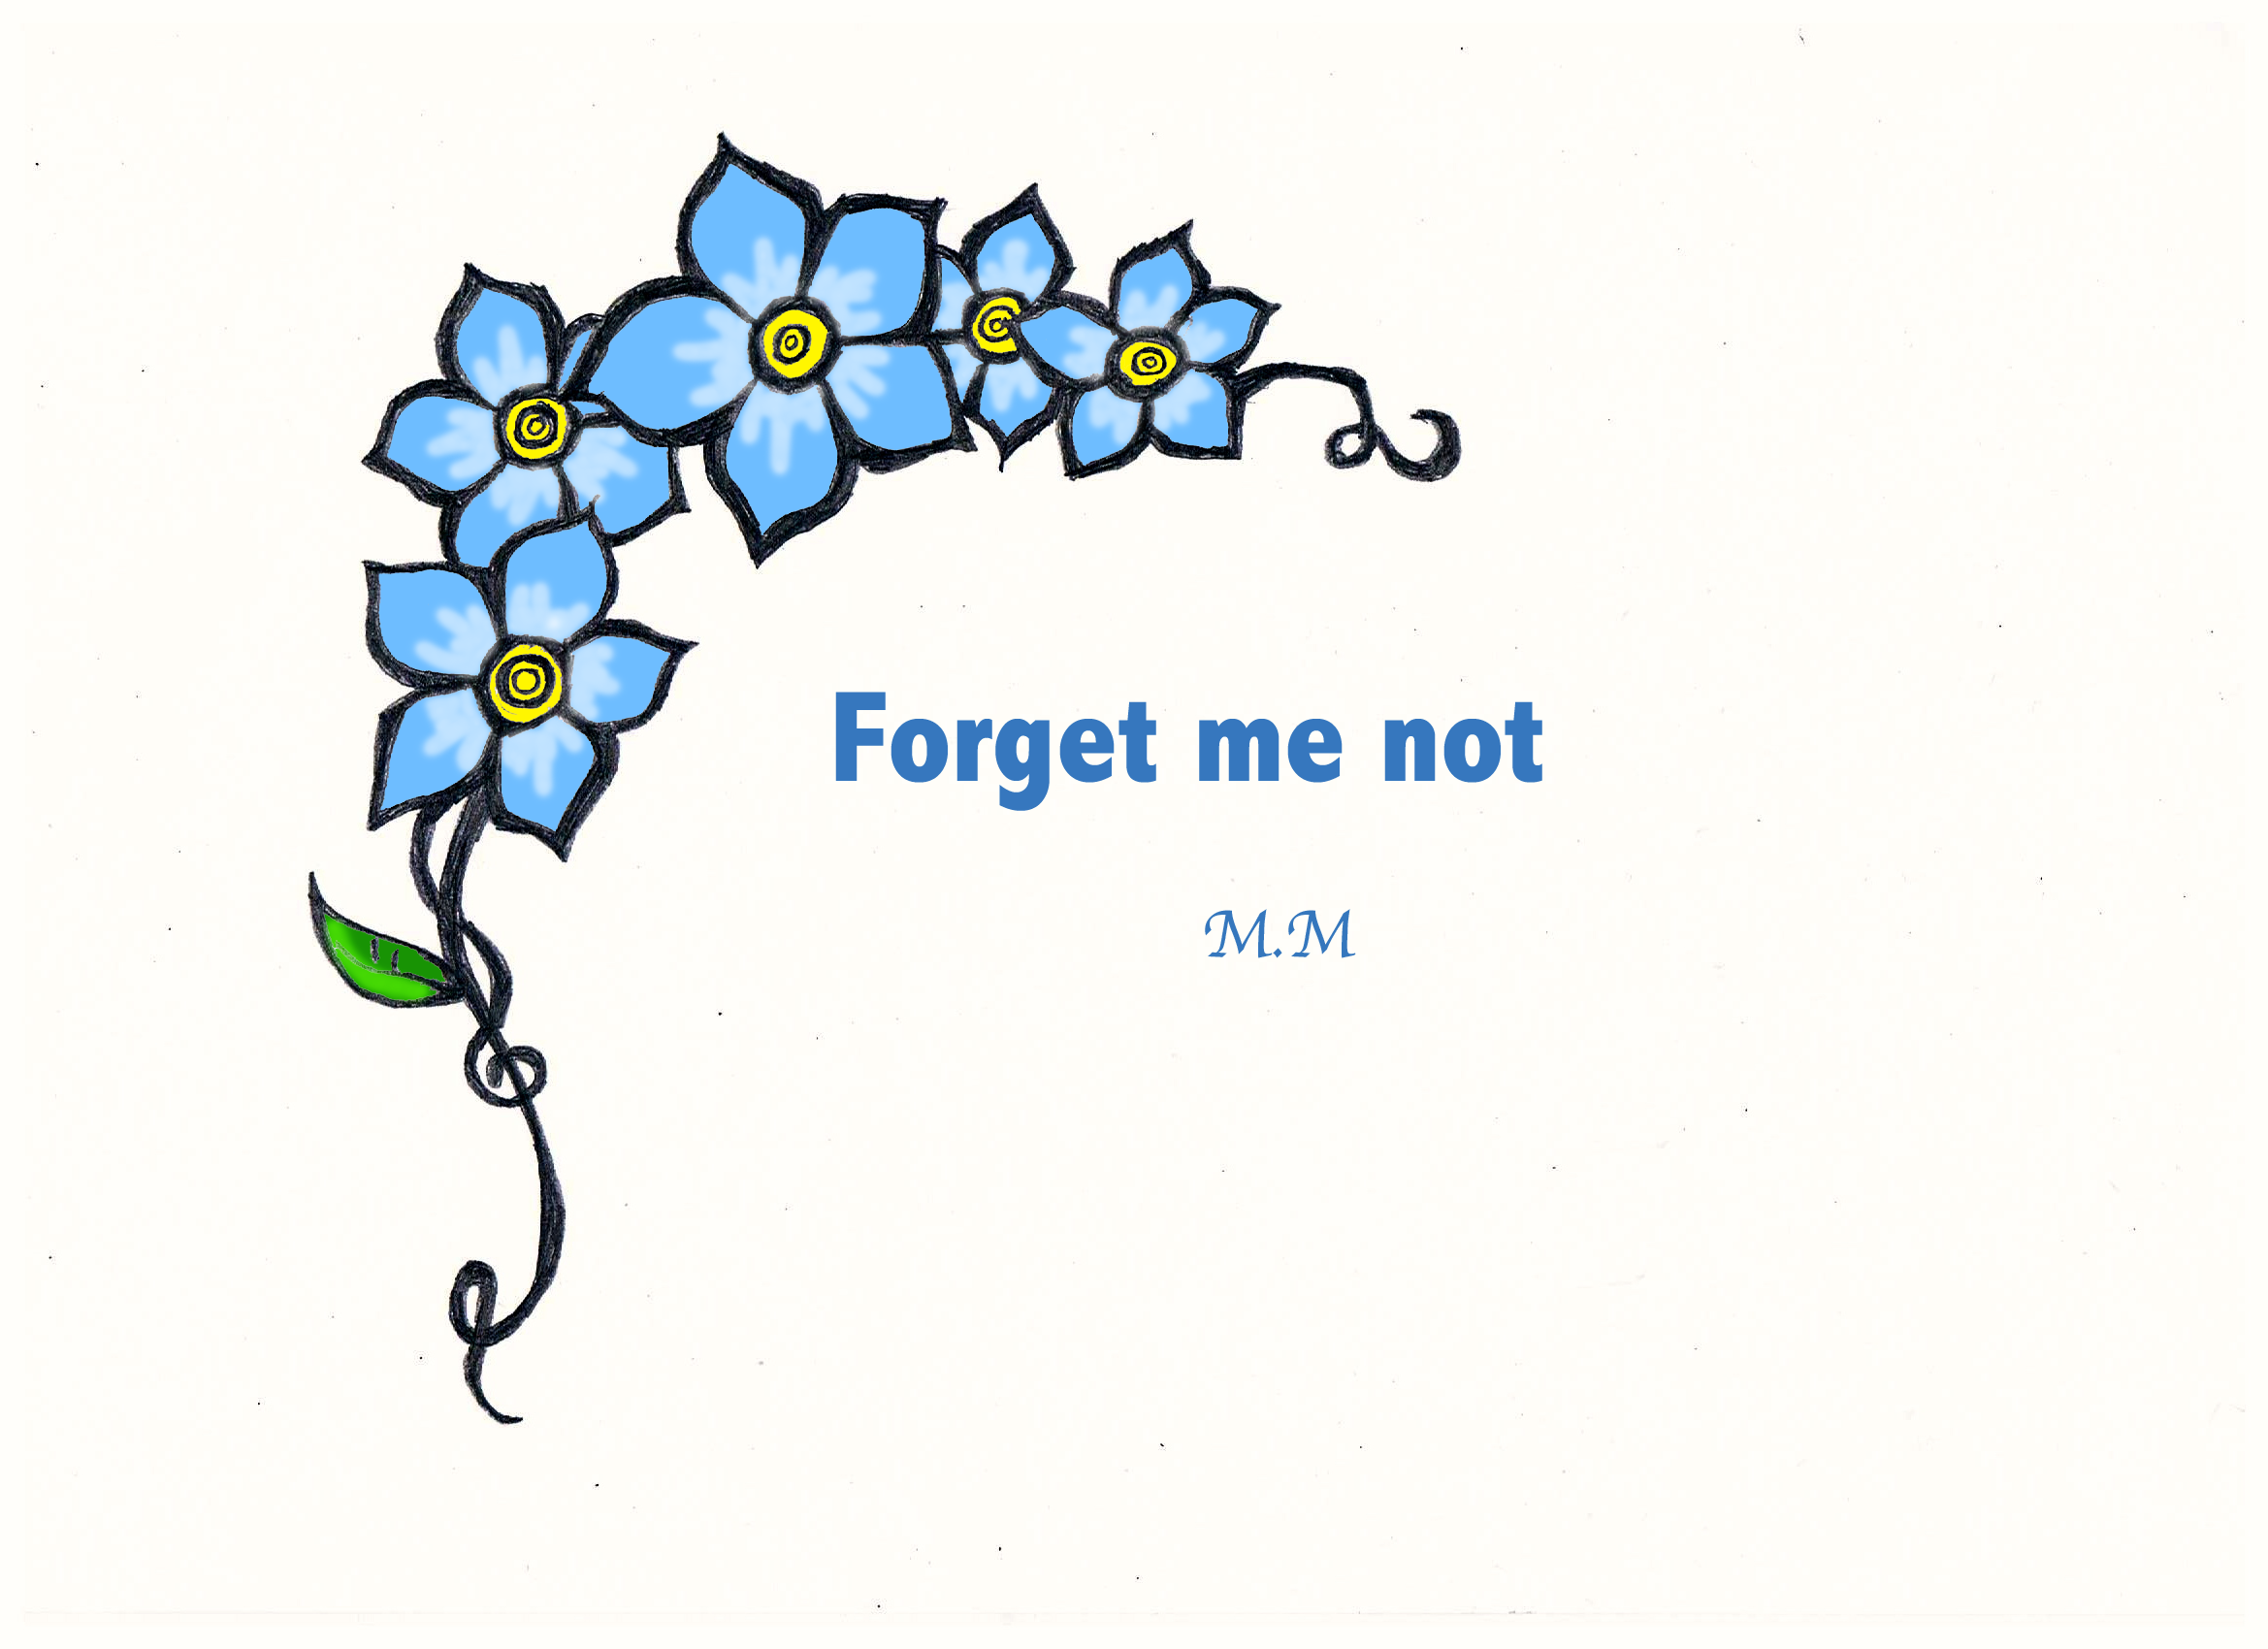 clip art forget me not flower - photo #38